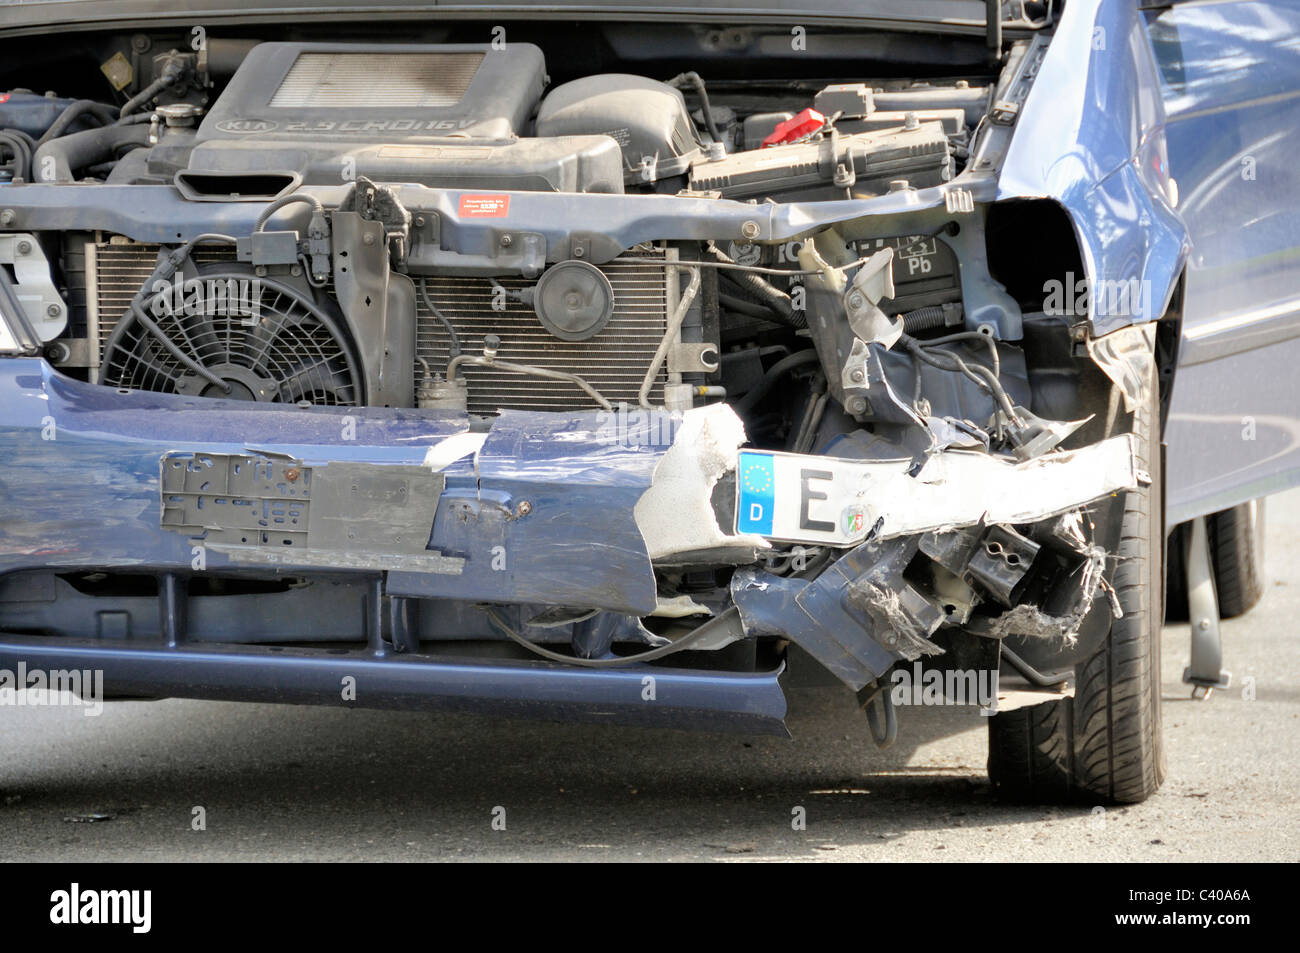 Germany, Europe, traffic accident, car, automobile, wreck, broken